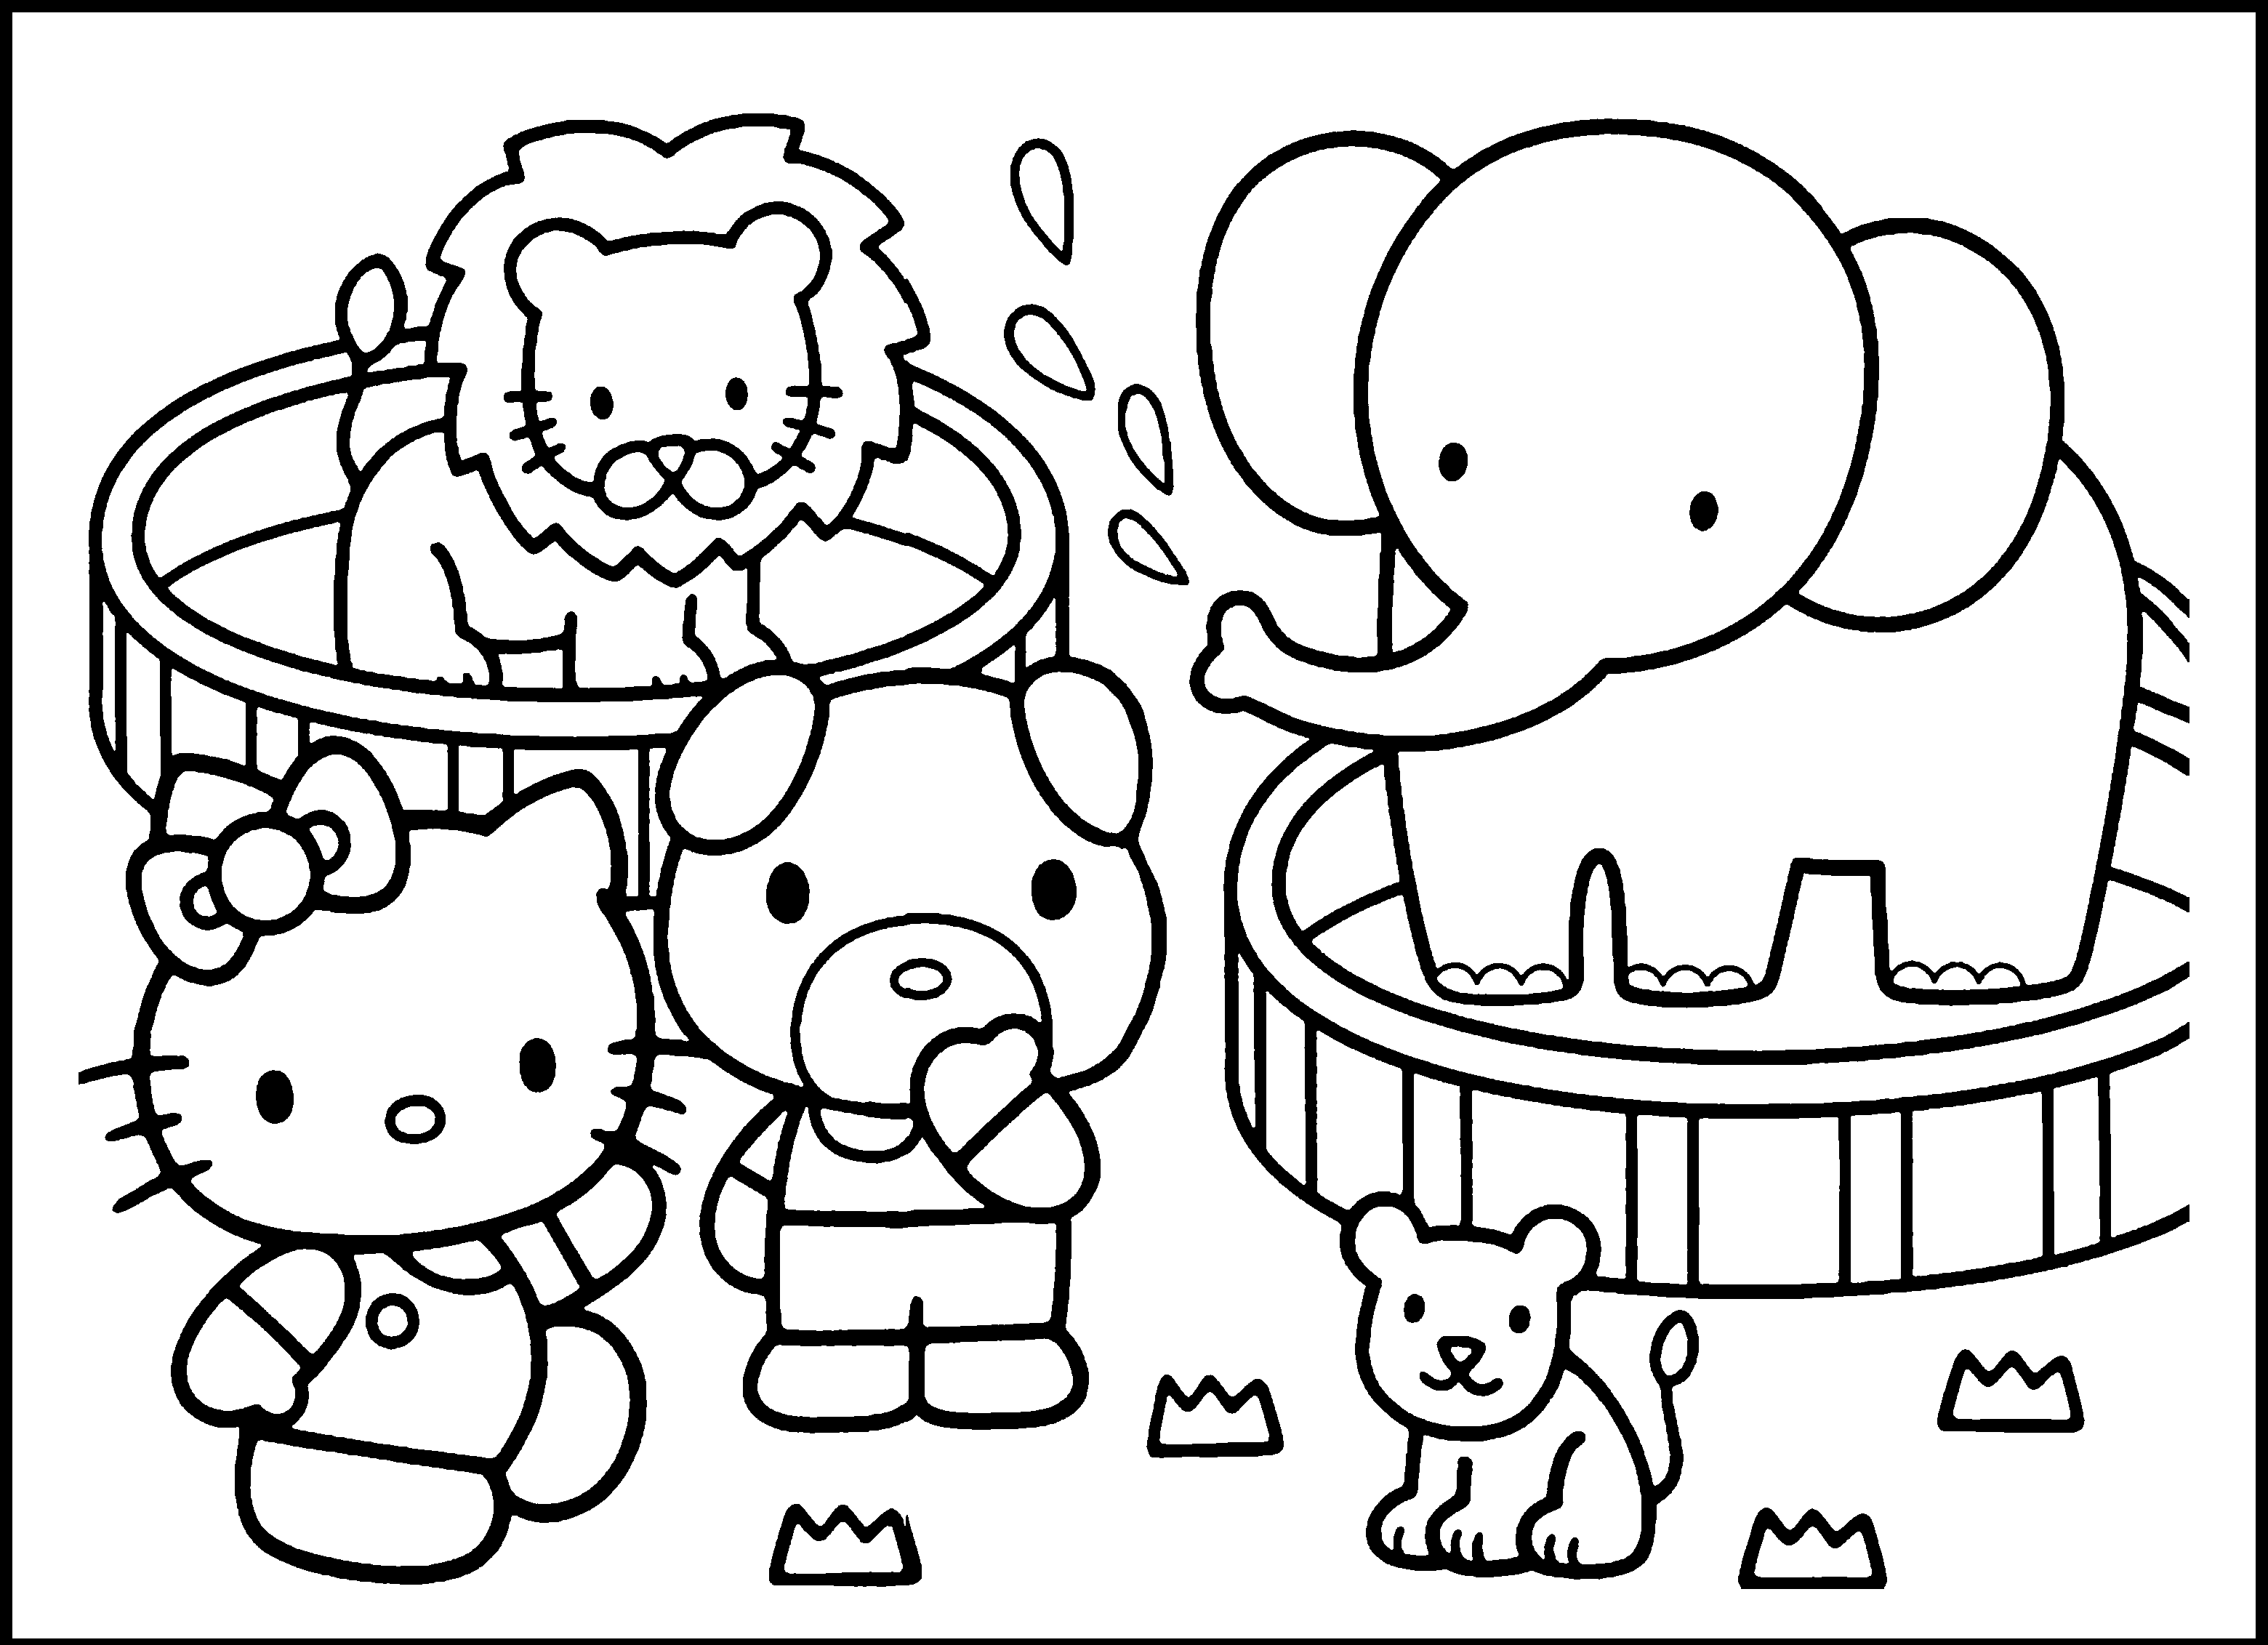 zoo coloring pictures for preschool zoo animal coloring pages elegant get this preschool zoo coloring for pictures preschool zoo